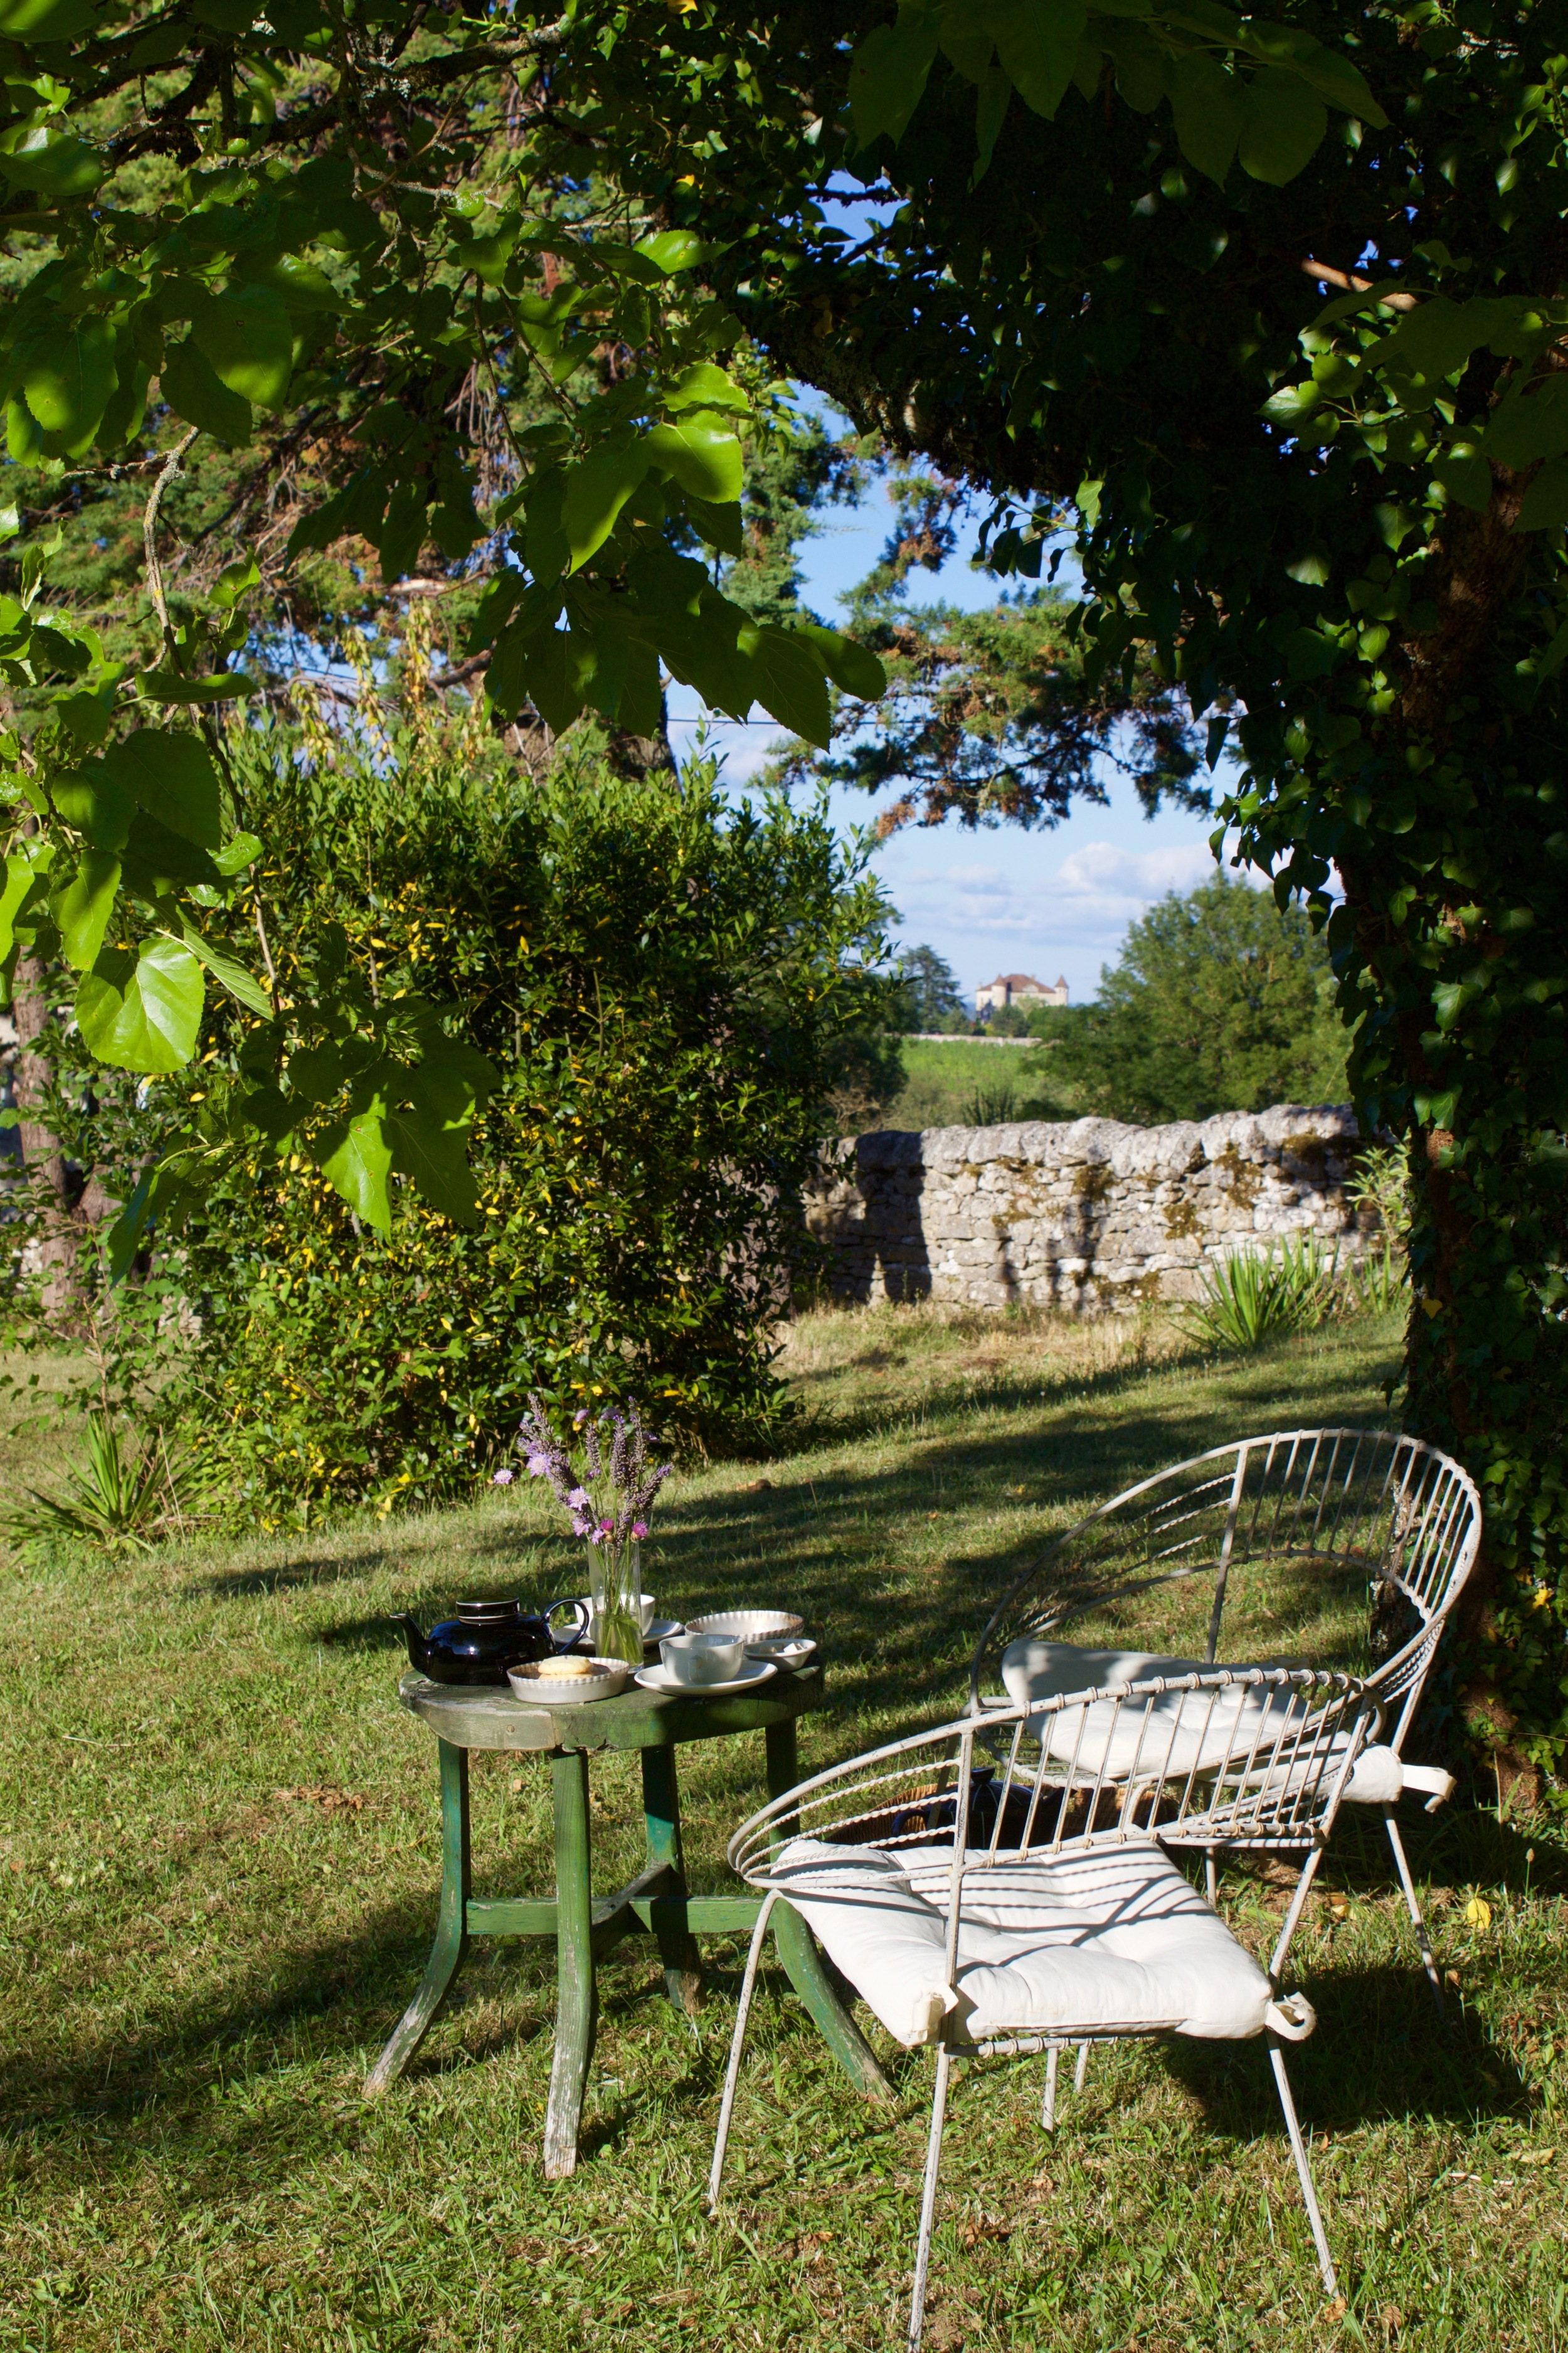 Dreamy Château off in the distance....